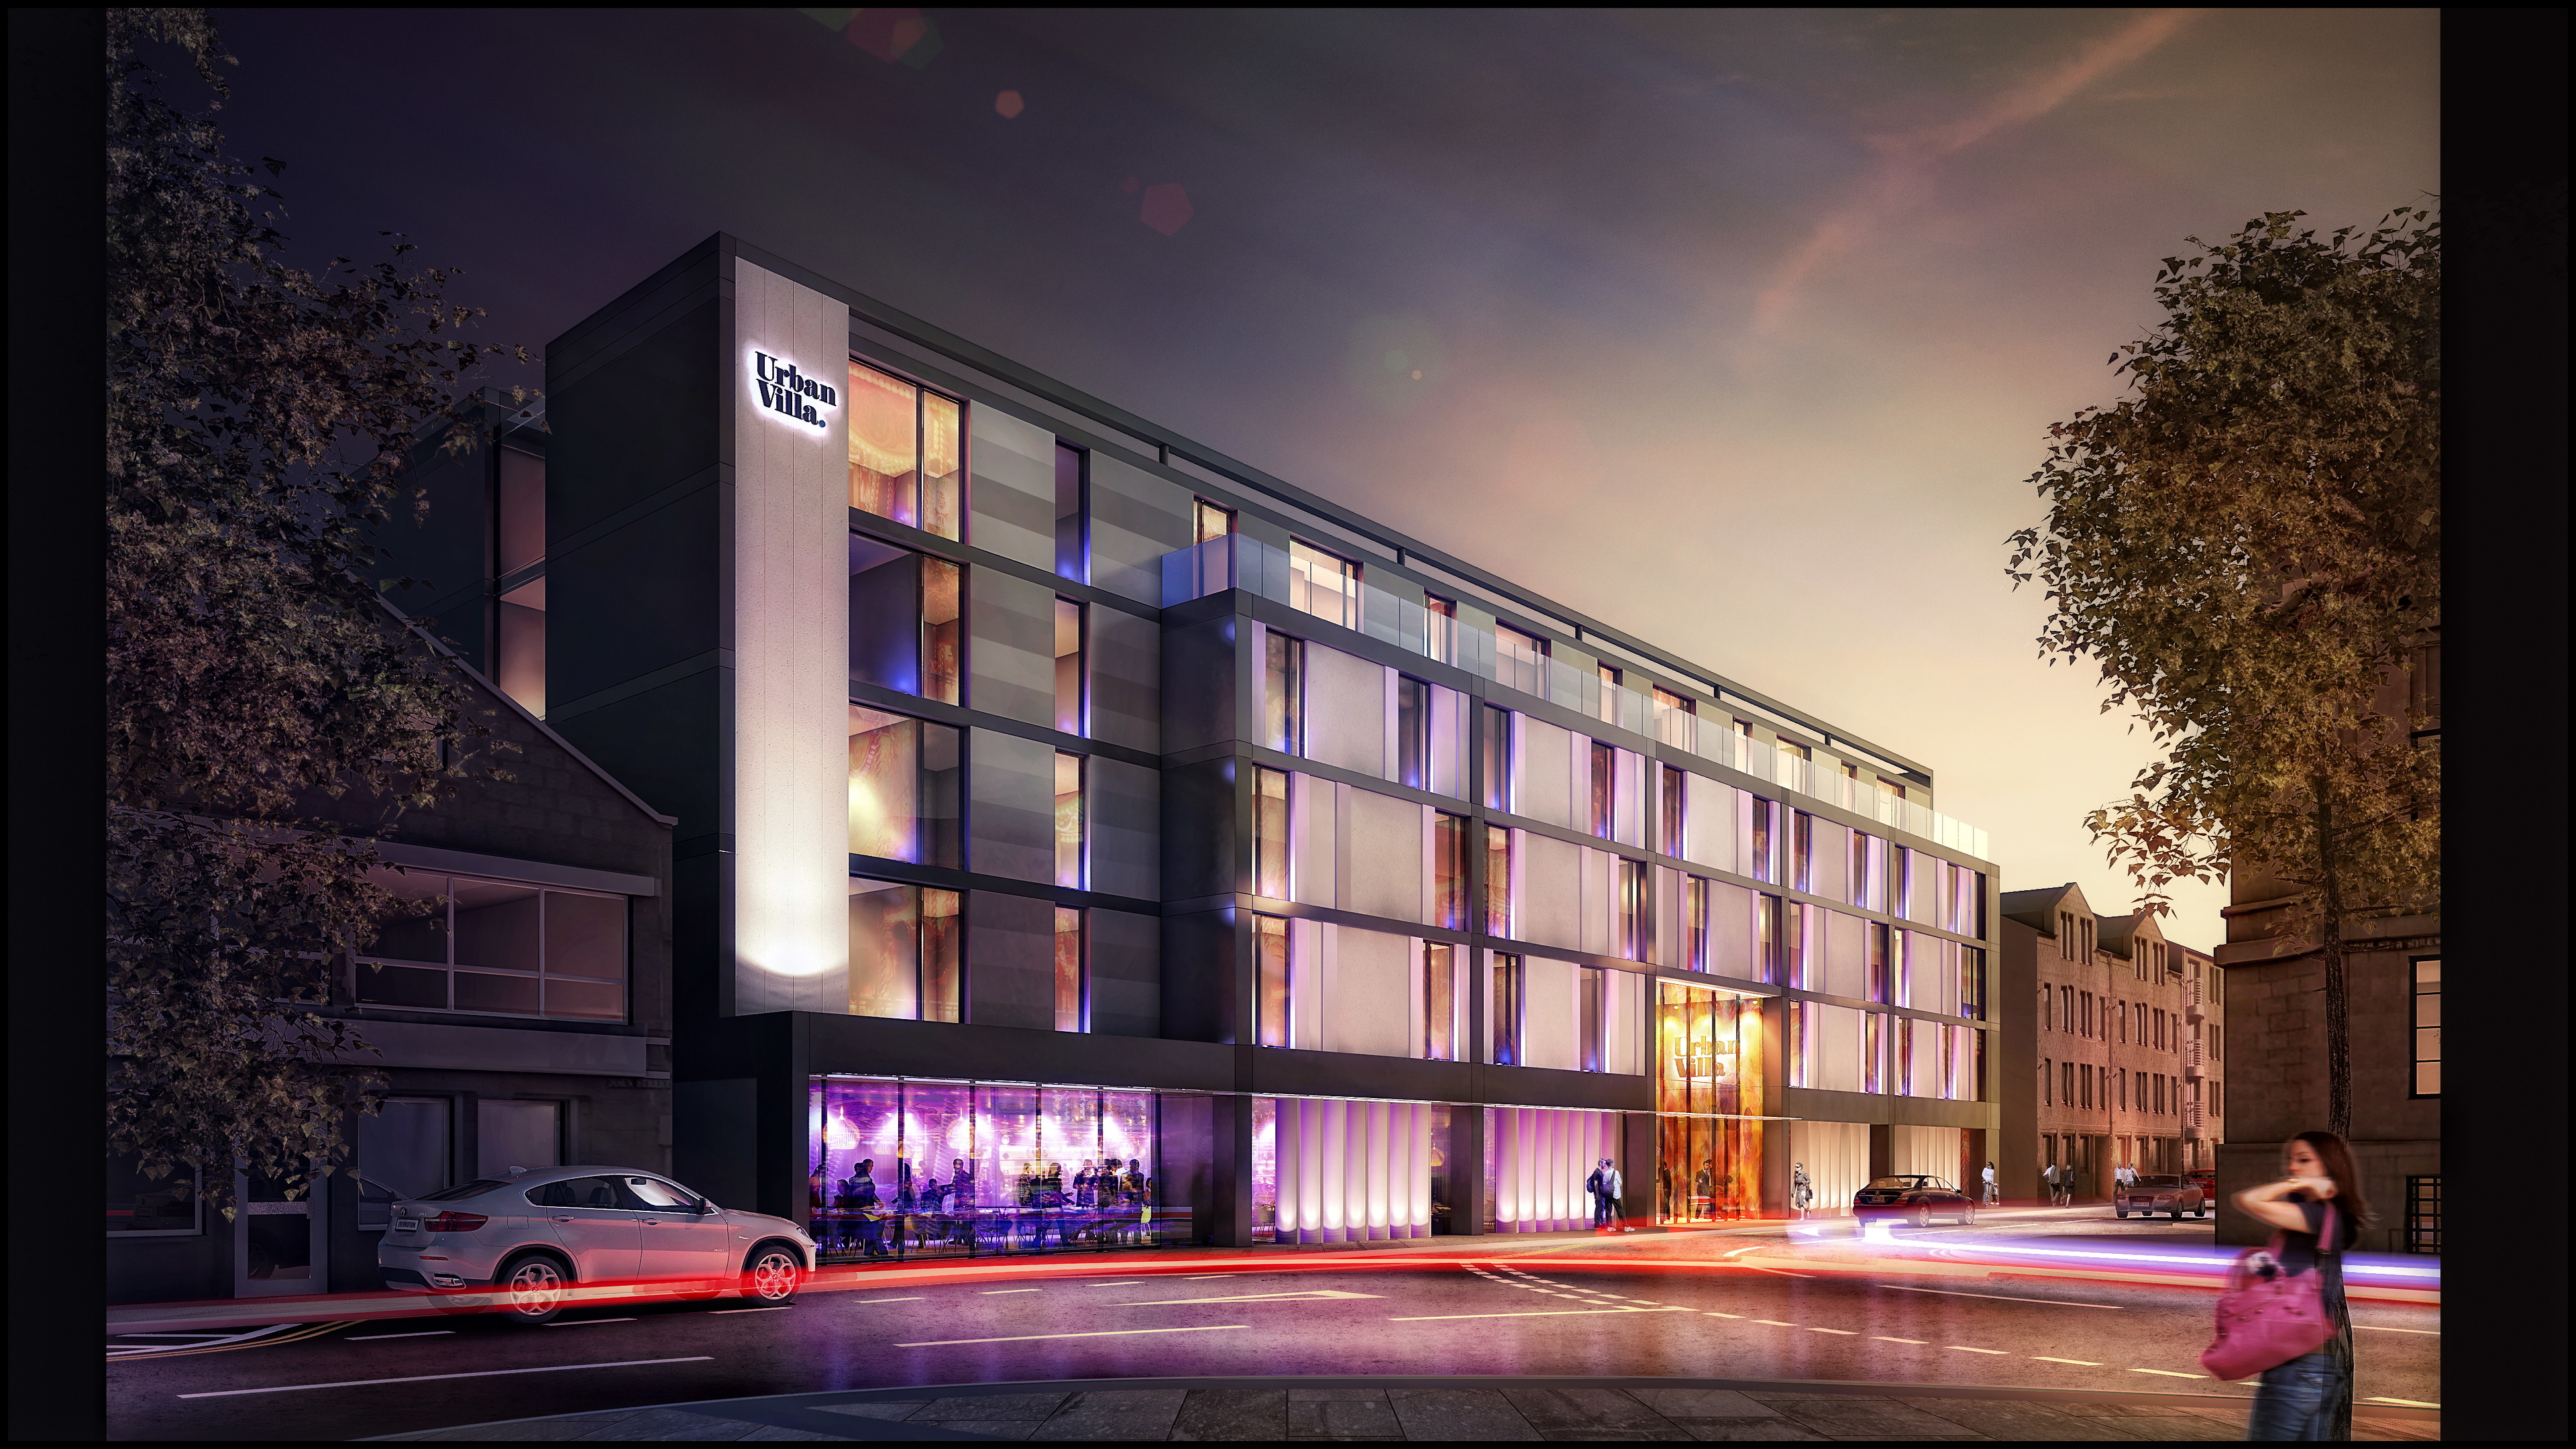 How the new hotel could look.